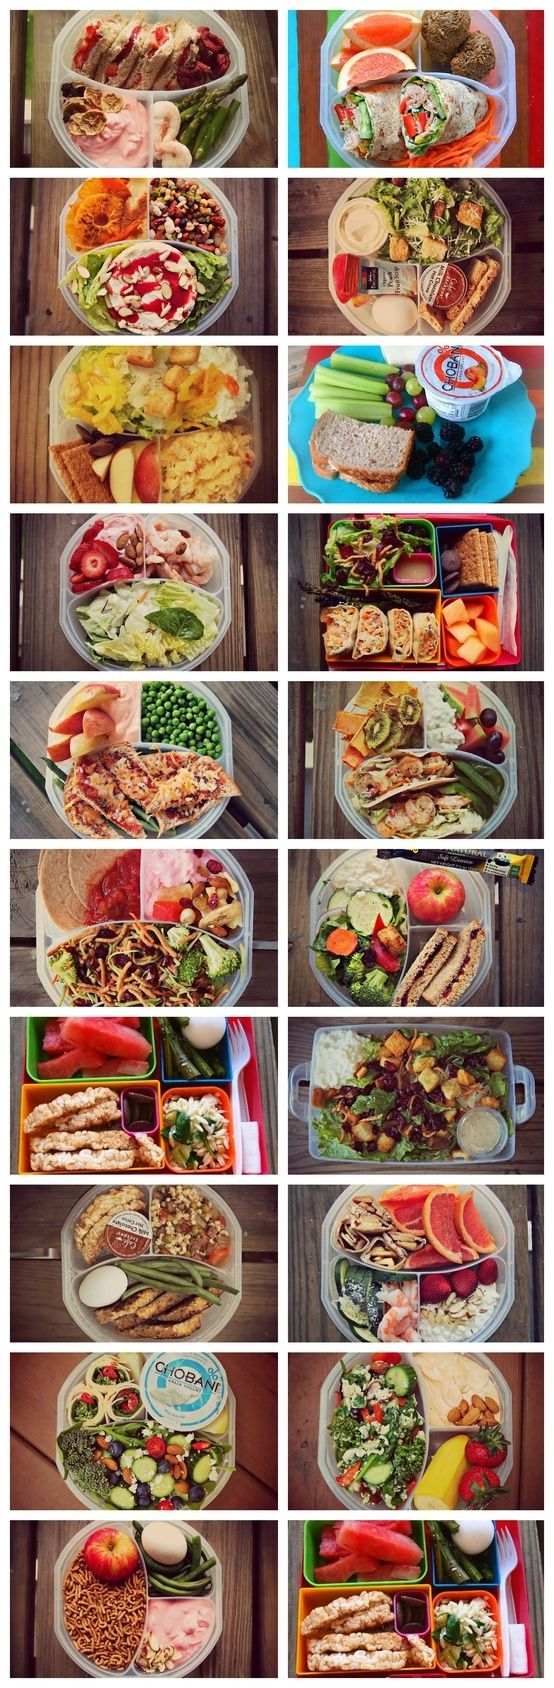 Healthy lunch ideas this blogger posts a pictur